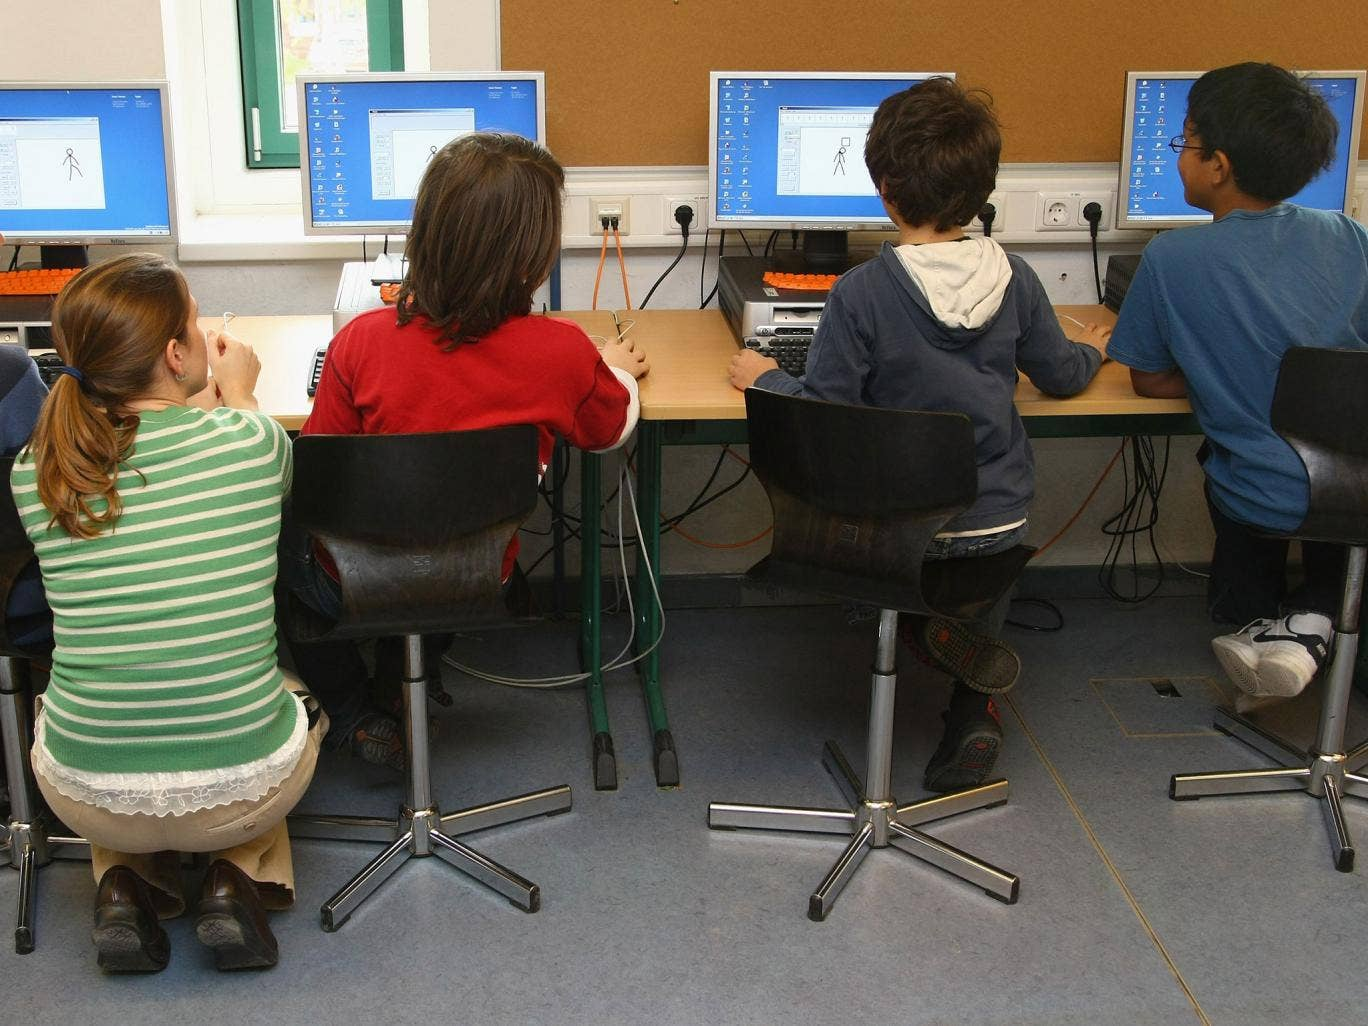 The new reforms have been introduced because of concern over the standard of computer technology teaching in the past